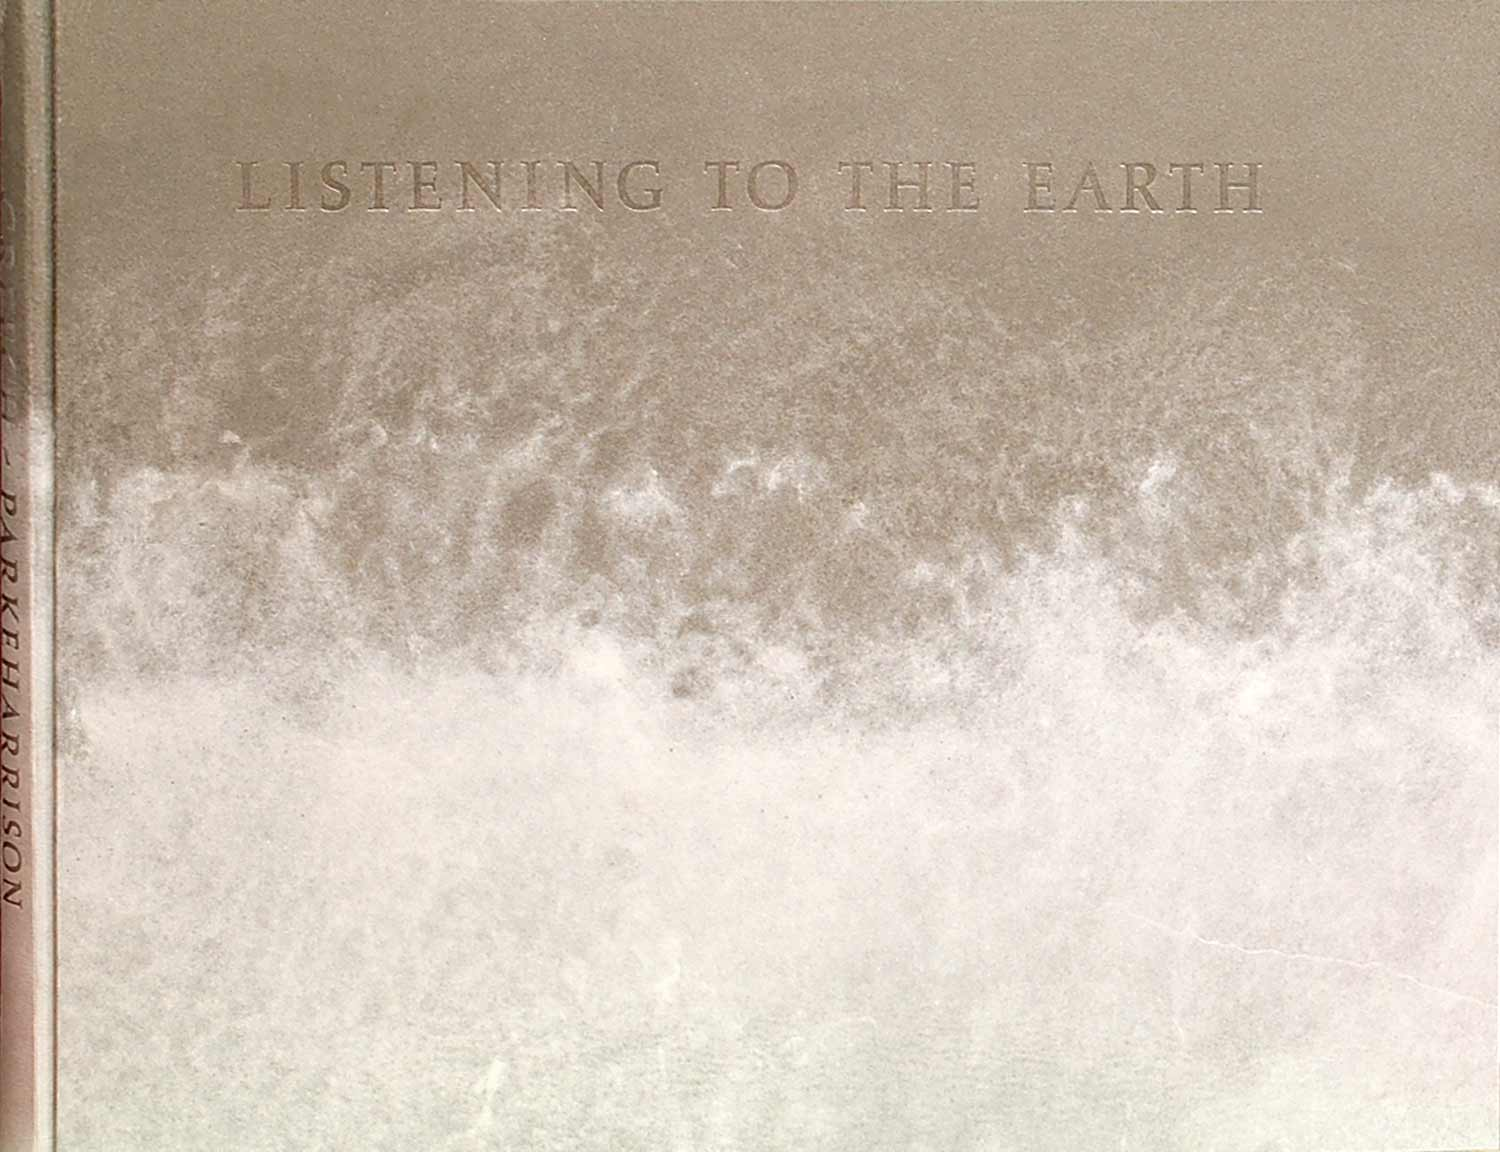 Morri Creech, Listening to the Earth